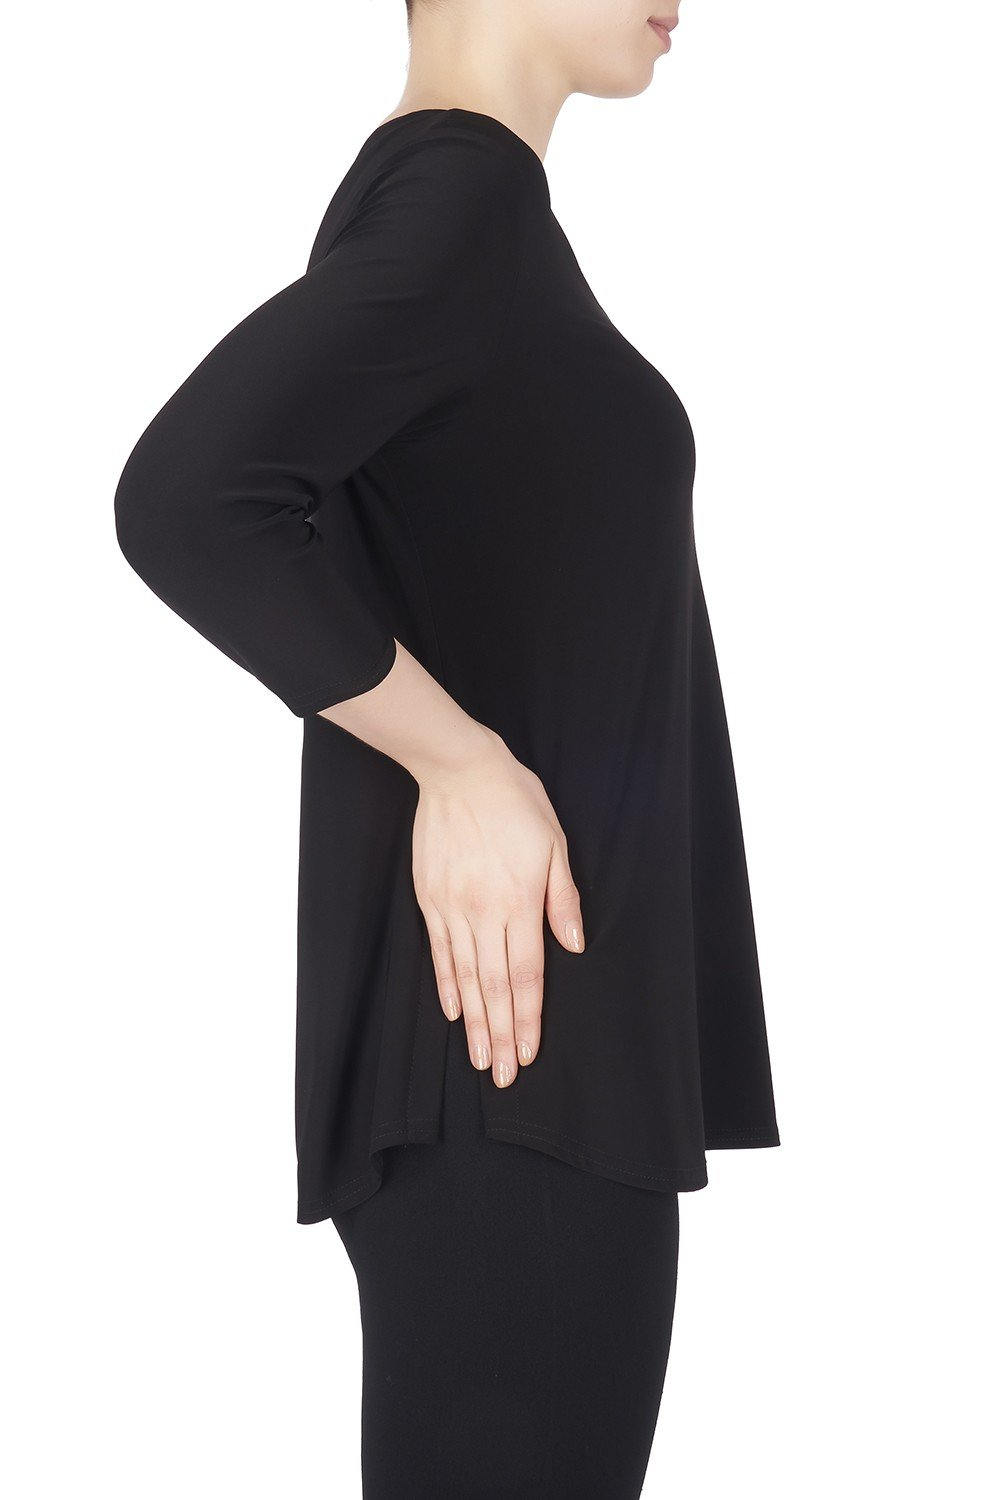 Image of Joseph Ribkoff Top Style 183171 Black Best Price On Sale